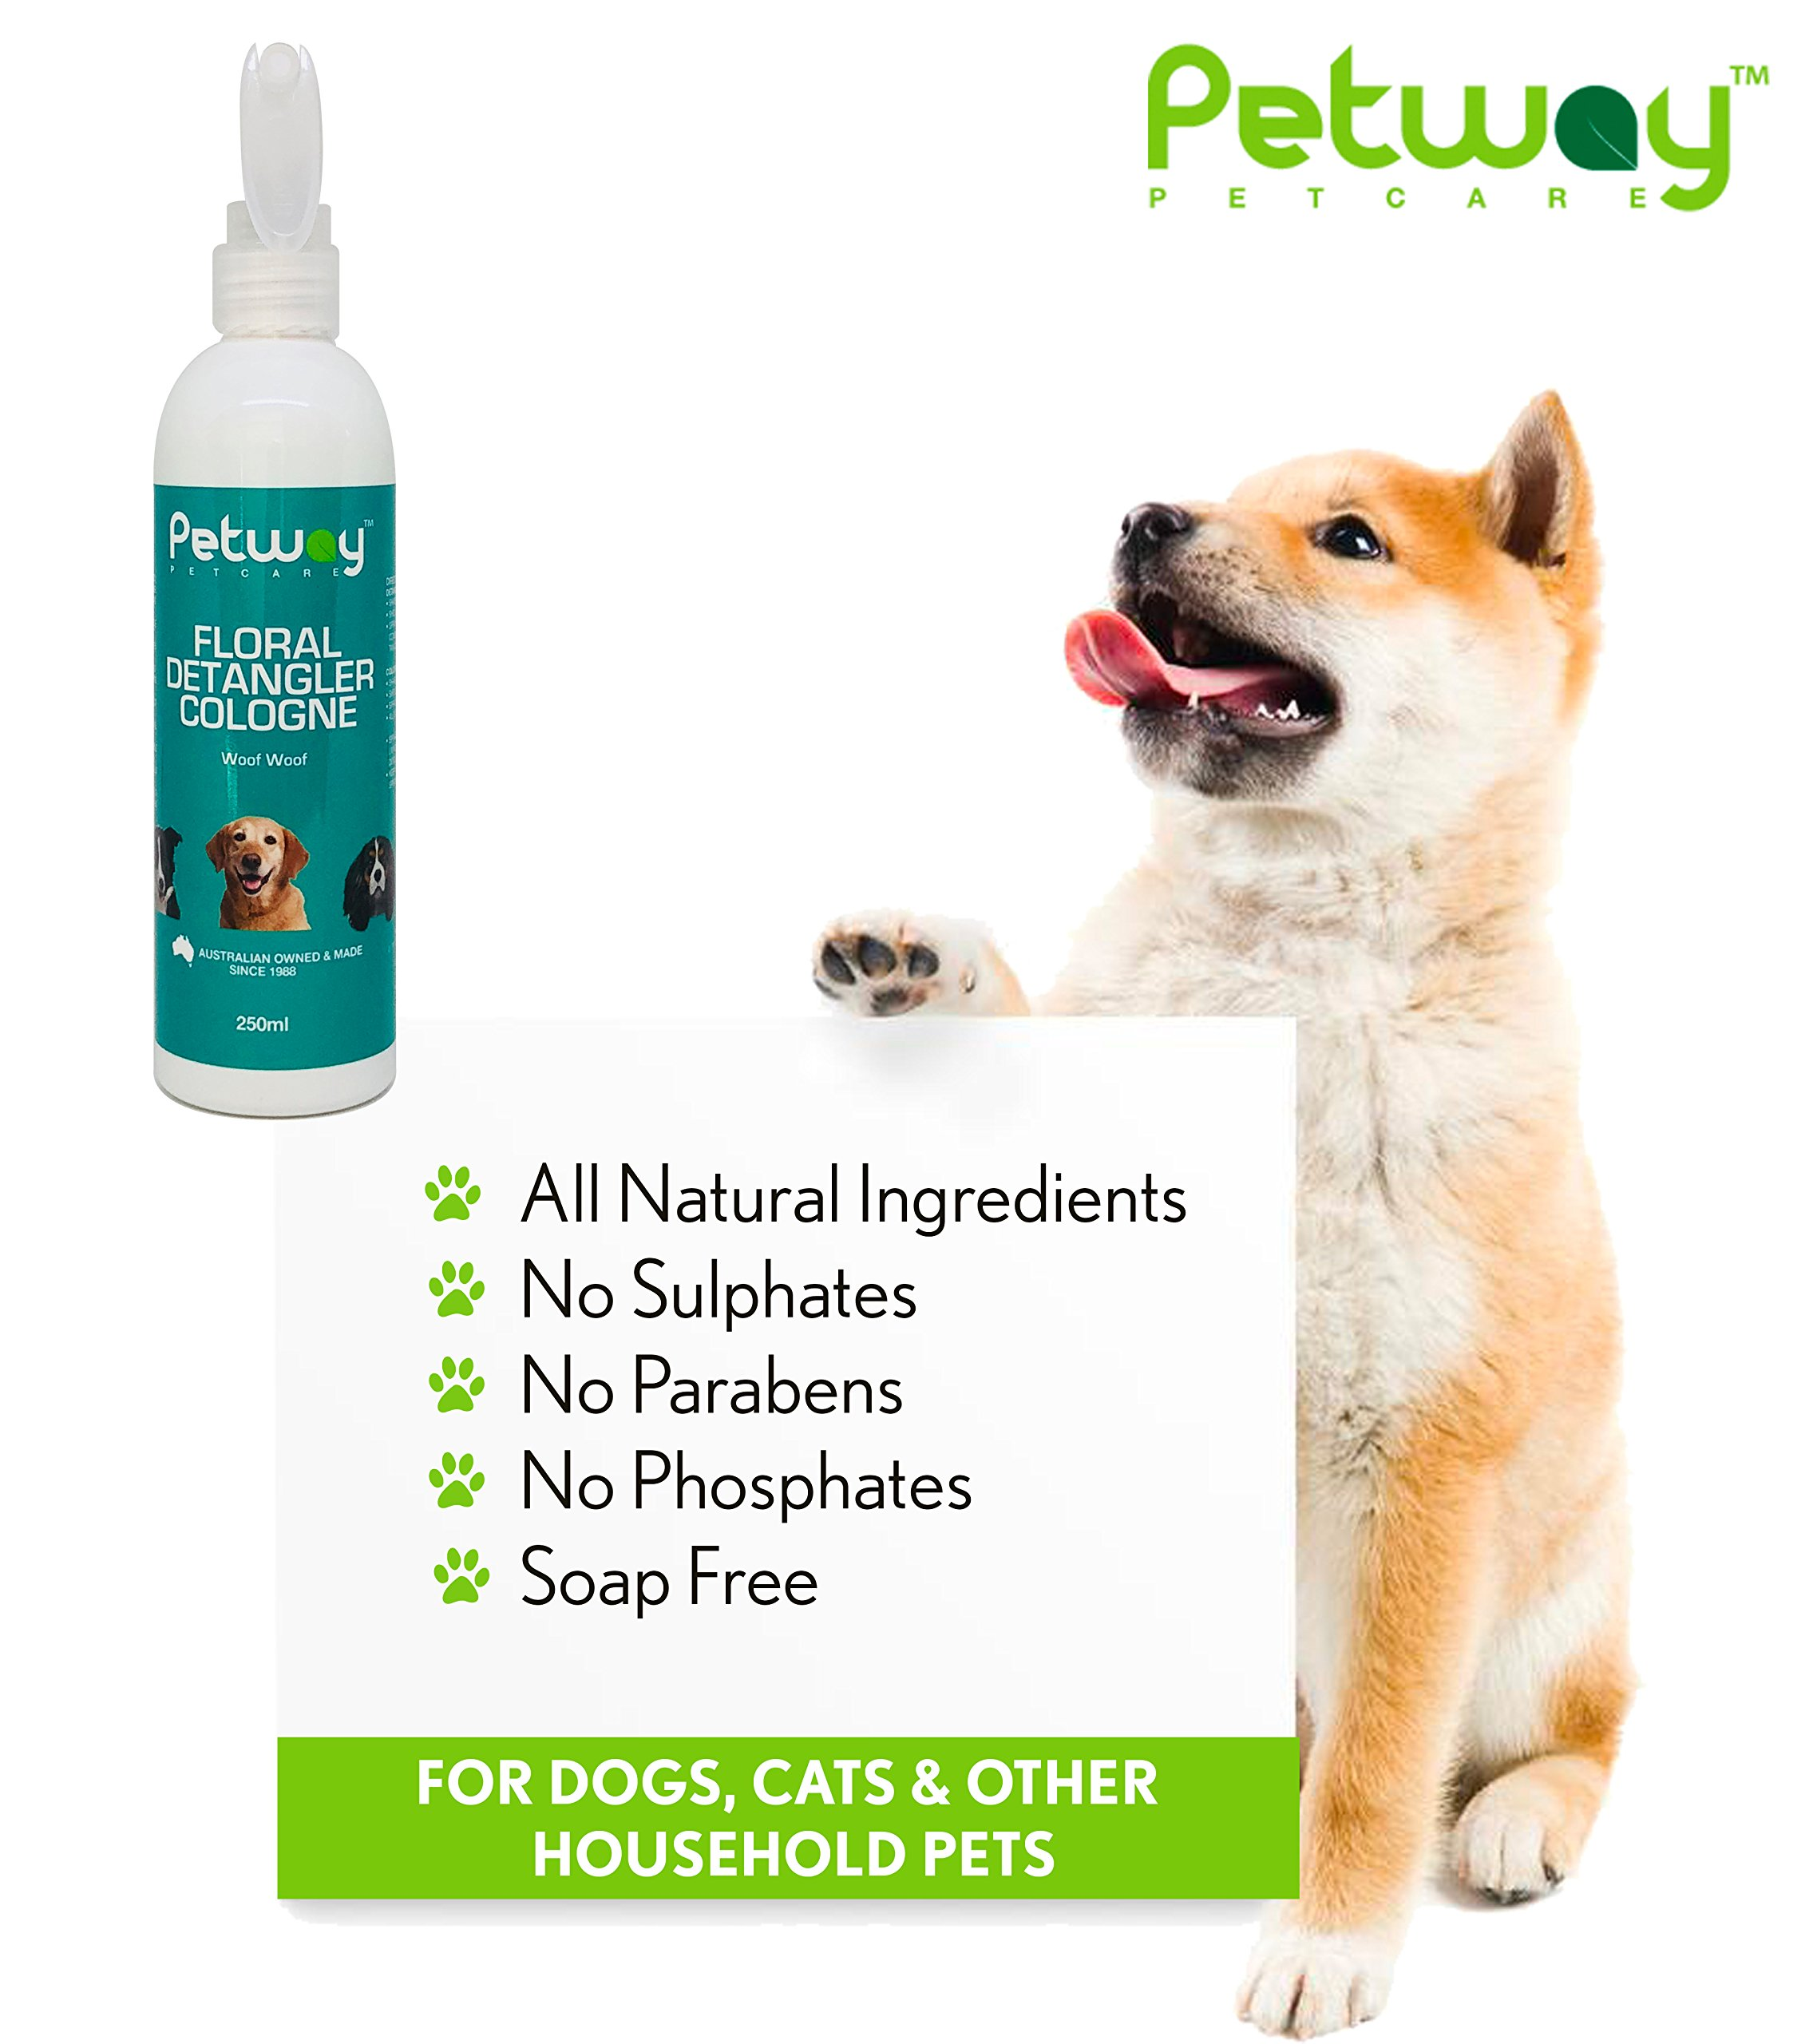 PETWAY Petcare Floral Detangler Cologne – Pet Cologne, Detangling and Dematting Spray with Deodorizing and Conditioning Qualities – Dog Grooming Detangler Conditioner Spray - 250ml by PETWAY (Image #4)